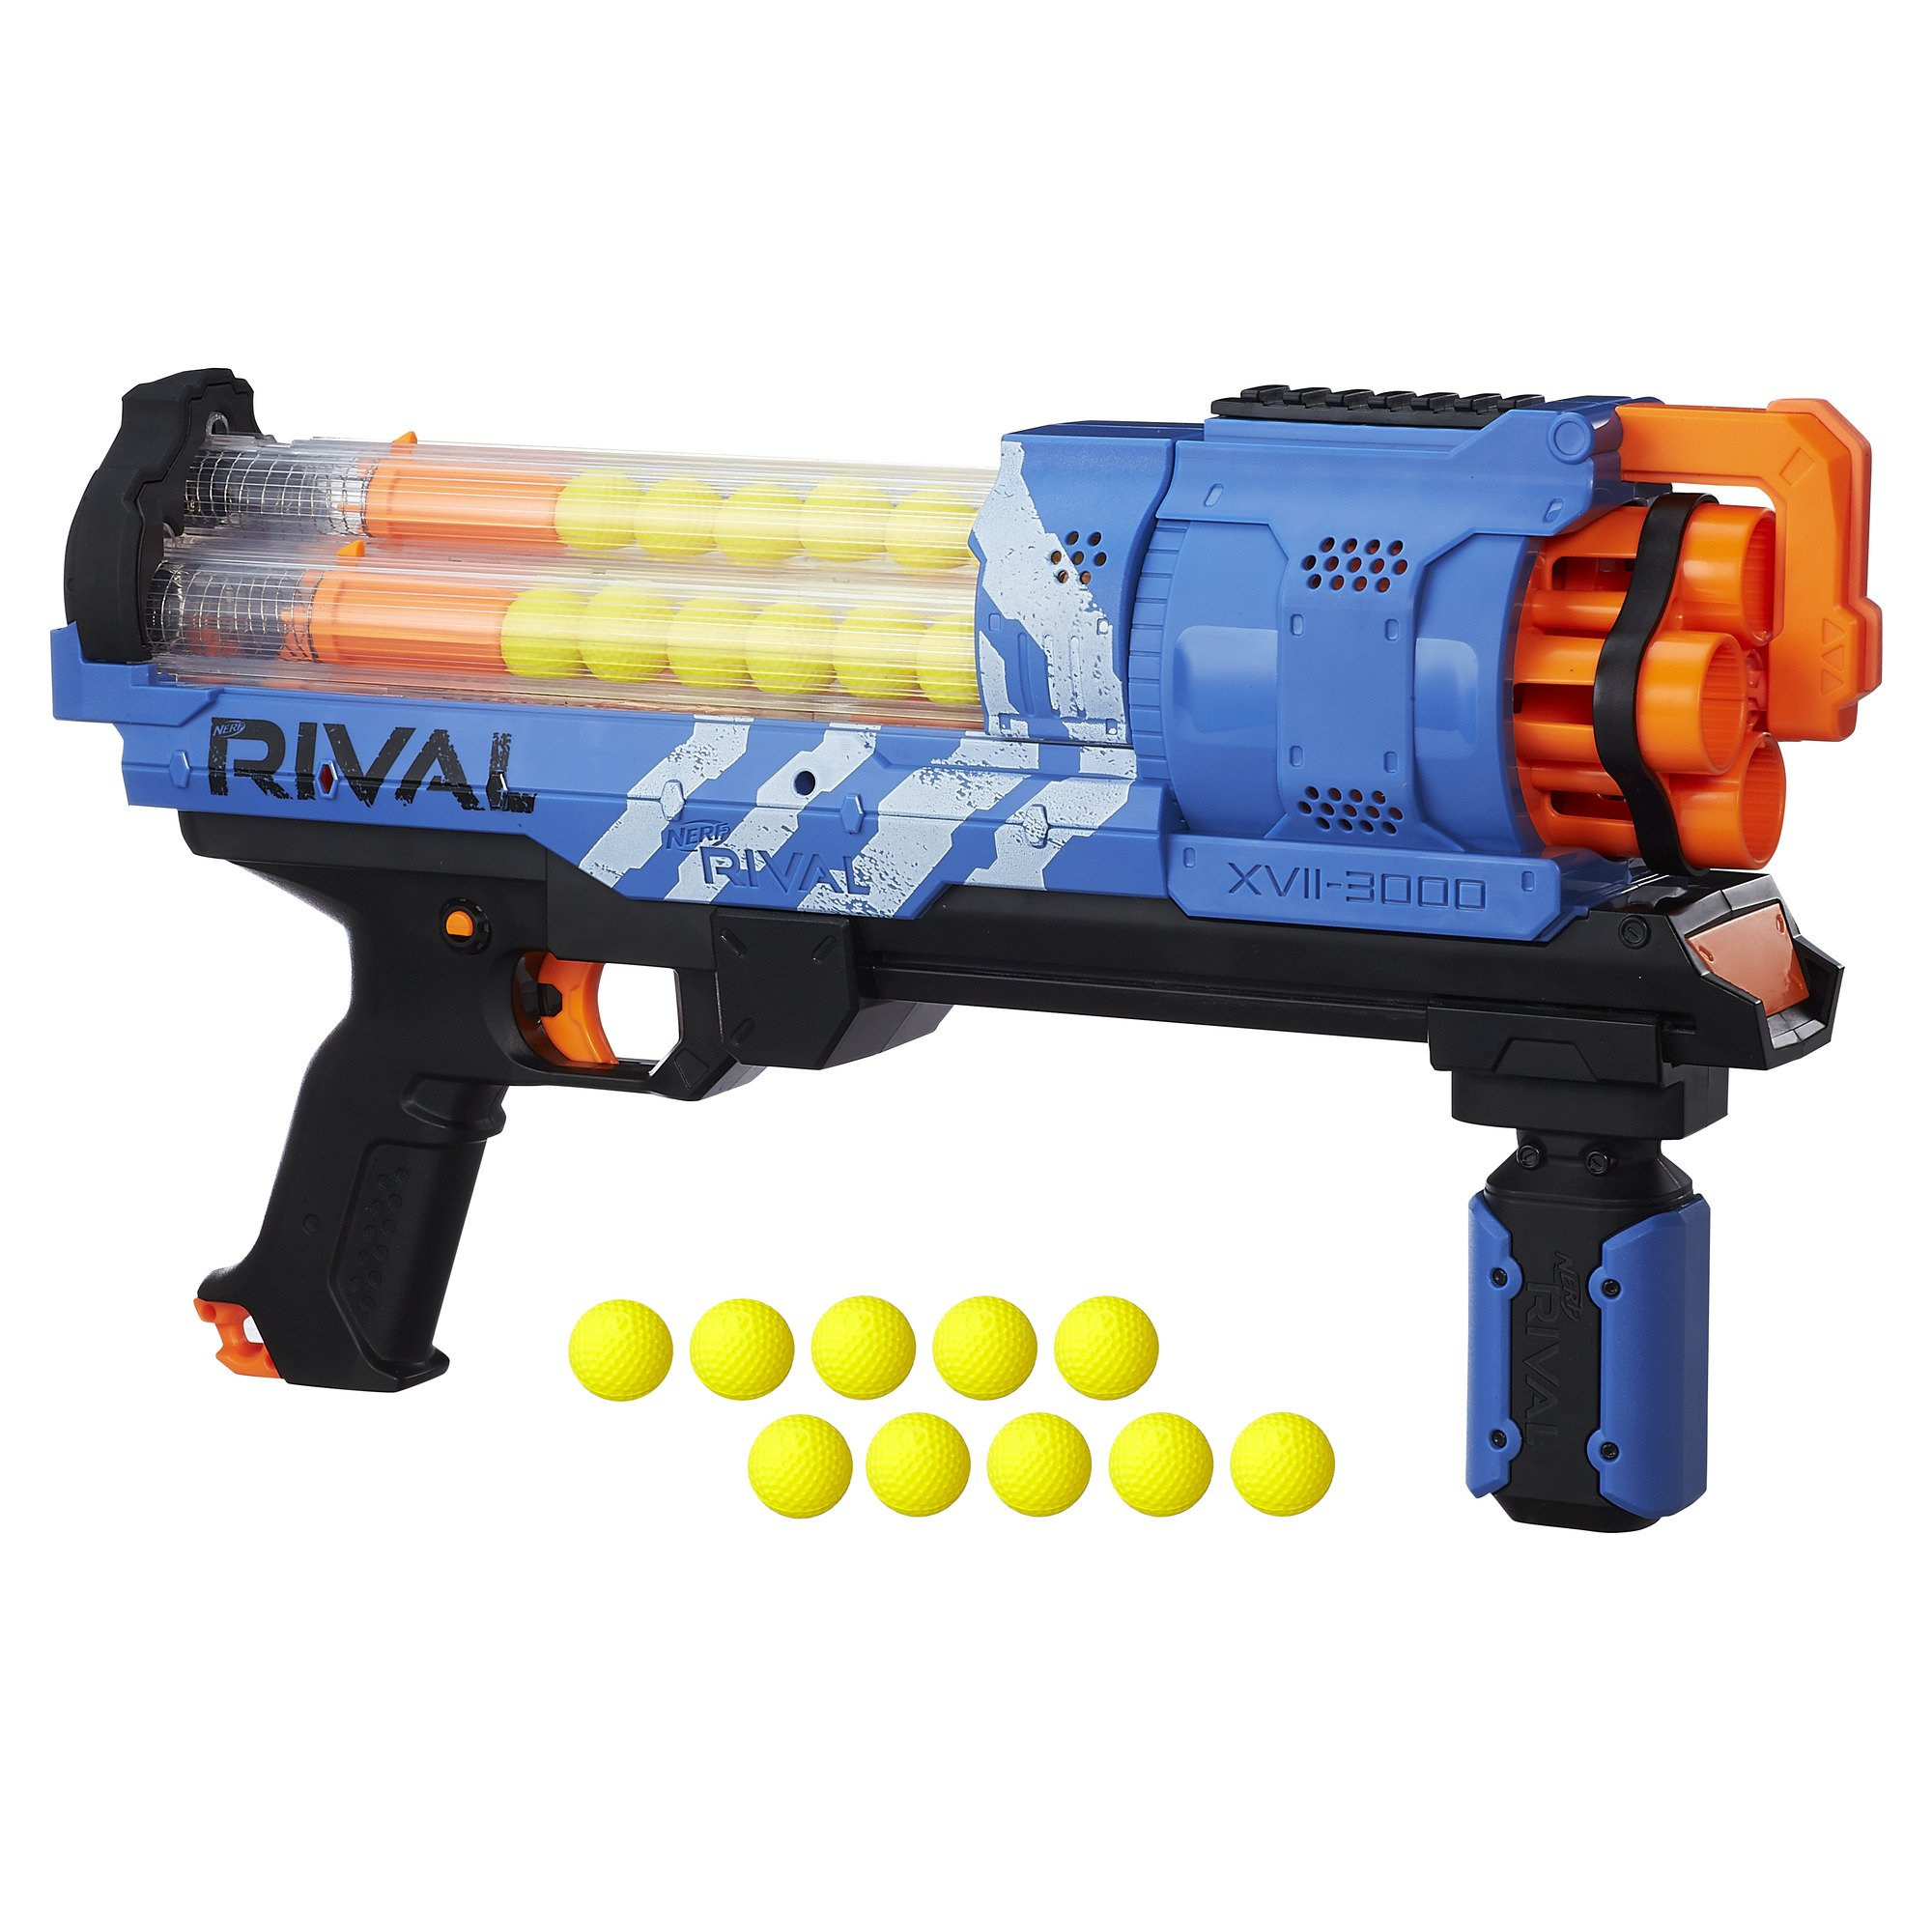 NERF Rival Artemis XVII-3000 Blue by NERF (Image #1)